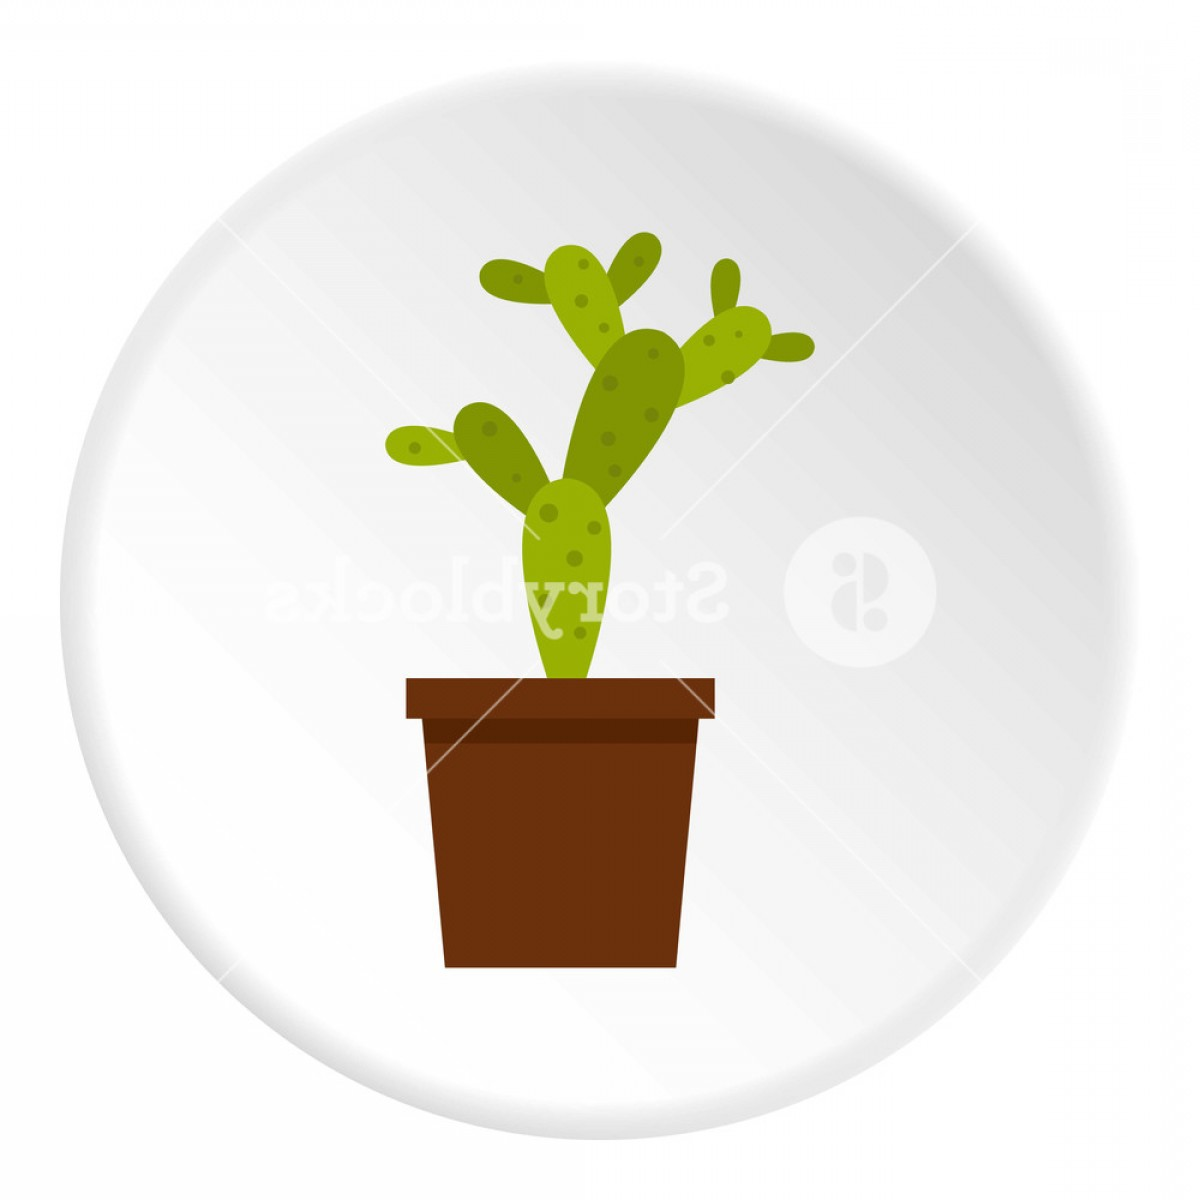 Chocolate Vector Plant: Piece Of Cake With Chocolate Cream Icon In Flat Circle Isolated On White Vector Illustration For Web Rxzolopwzmjiglpwcs